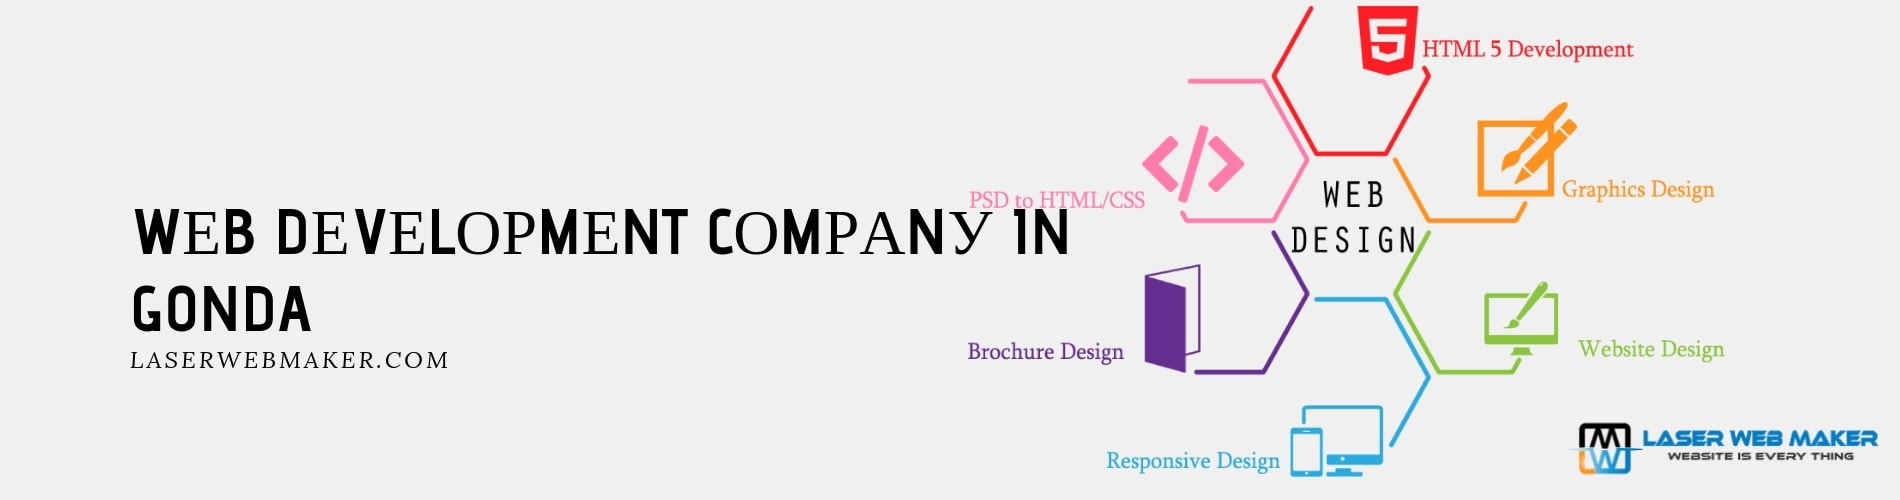 web development company in gonda